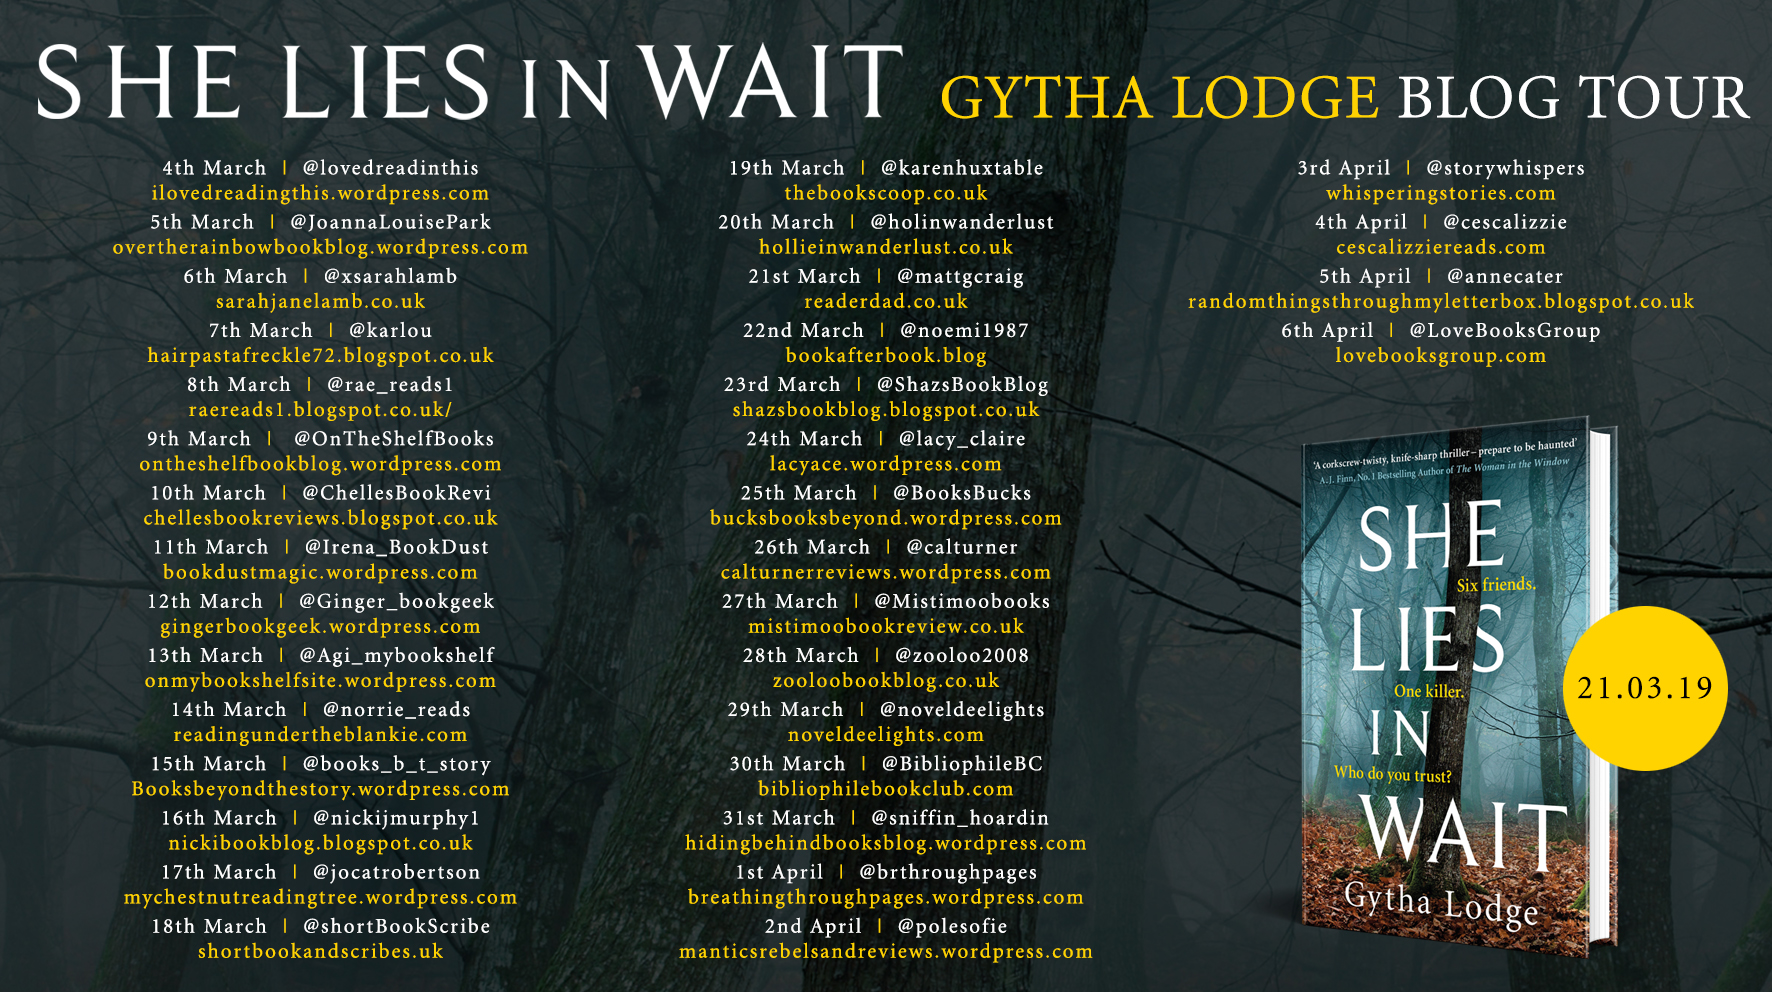 #BookReview of She Lies in Wait by Gytha Lodge @thegyth @JennyPlatt90 @MichaelJBooks #DetectiveJonahSheens #WhoDoYouTrust?